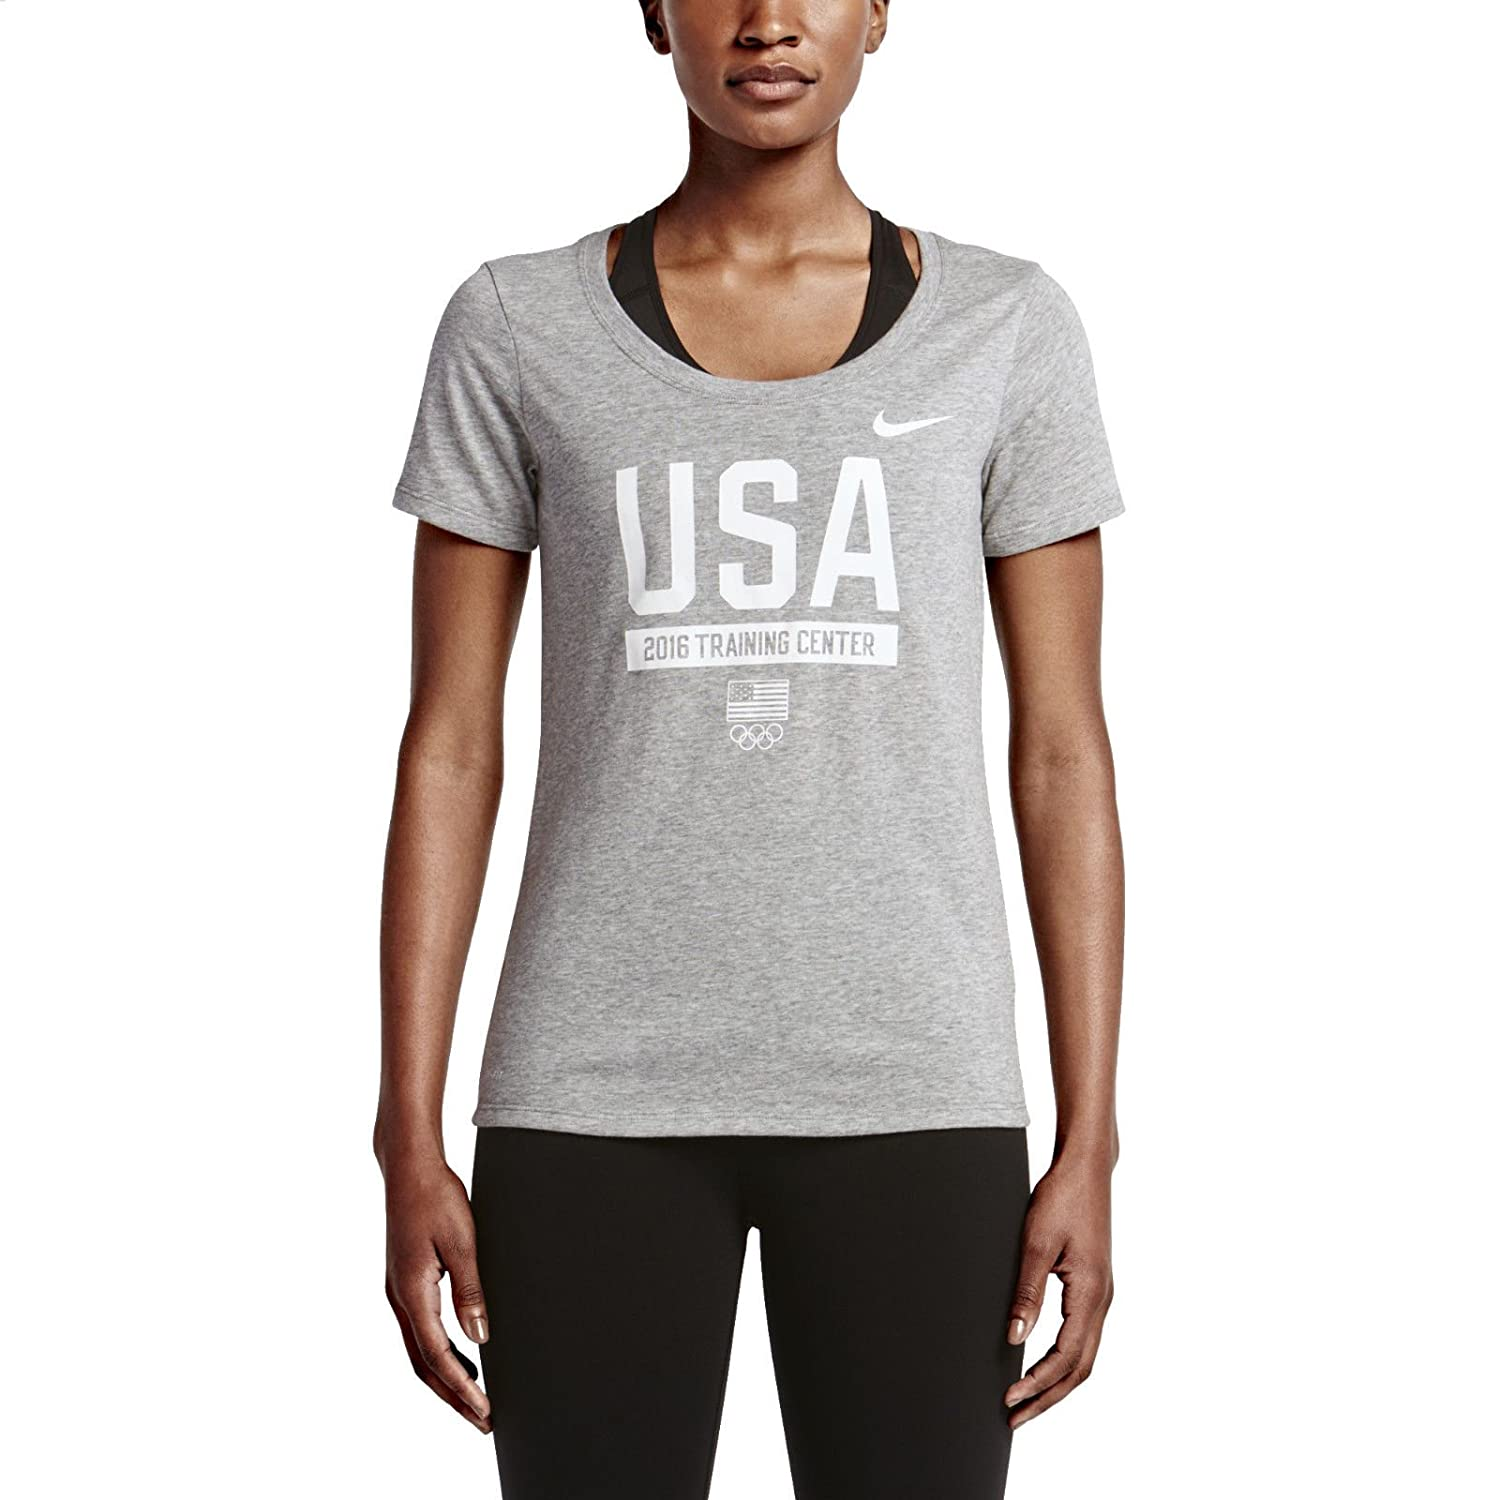 Nike Wome's Team USA Training Graphic T-Shirt